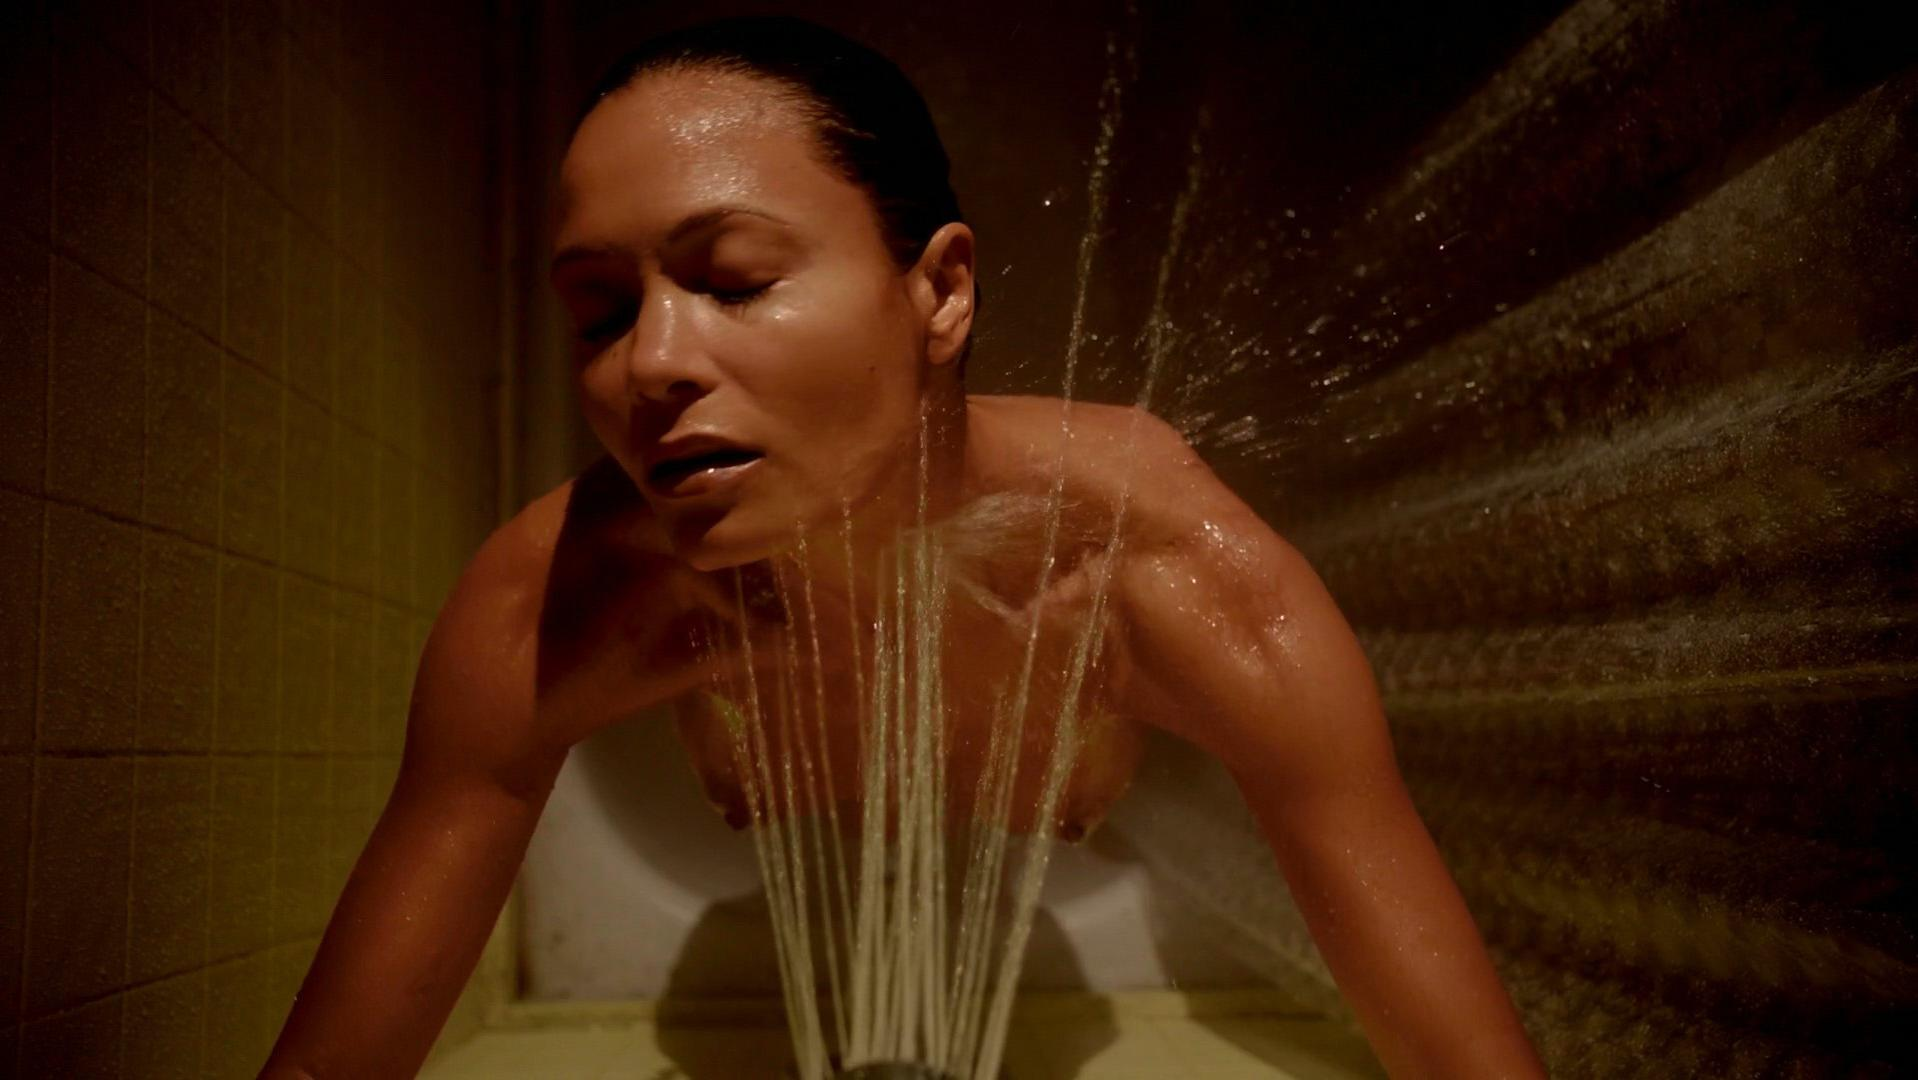 Thandie Newton nude - Rogue s01e01-02 (2013)